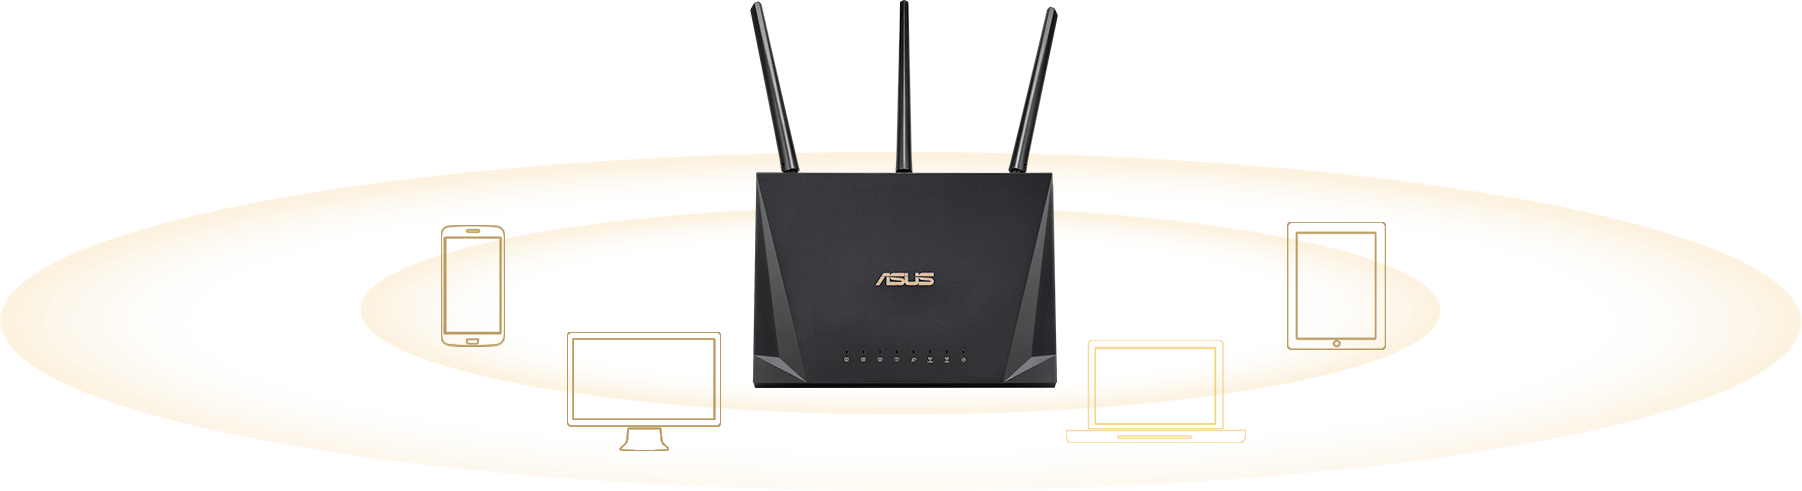 ASUS RT-AC1750U comes with Multi-user MIMO, allowing RT-AC1750U to serve multi-device at a time